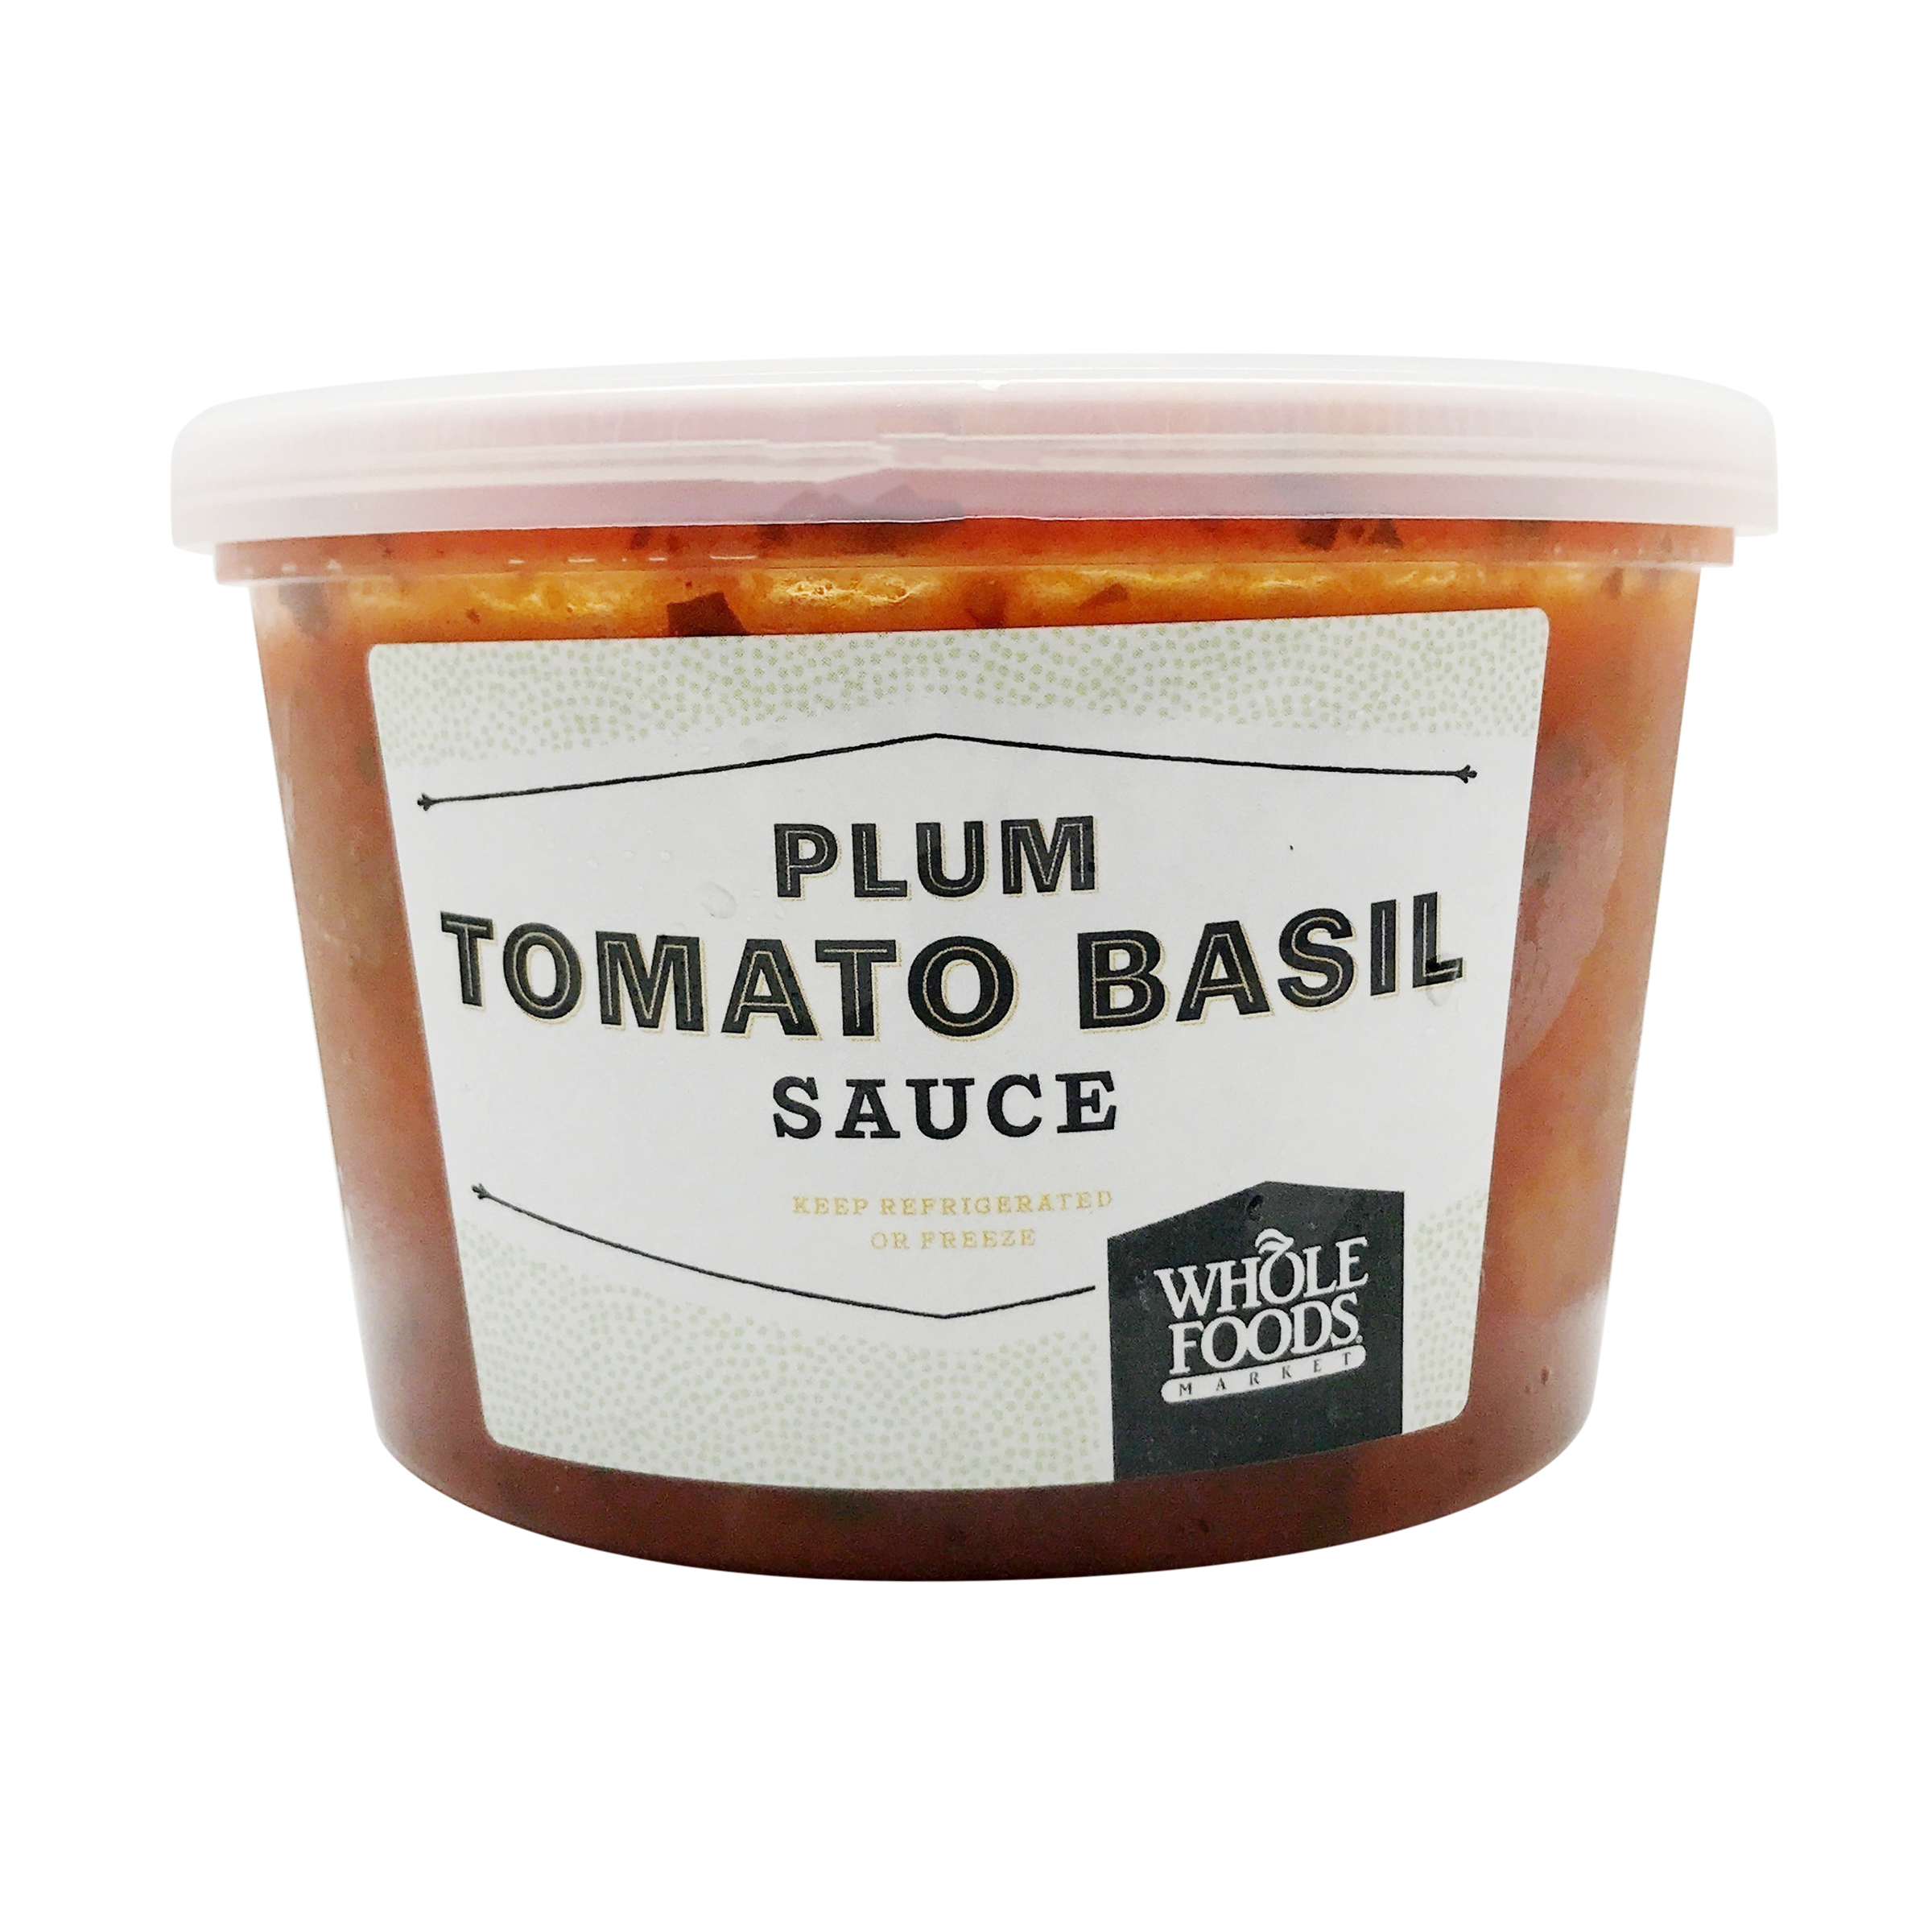 Cucina Antica Tomato Basil Whole Foods Plum Tomato Basil Sauce 16 Oz Whole Foods Market Whole Foods